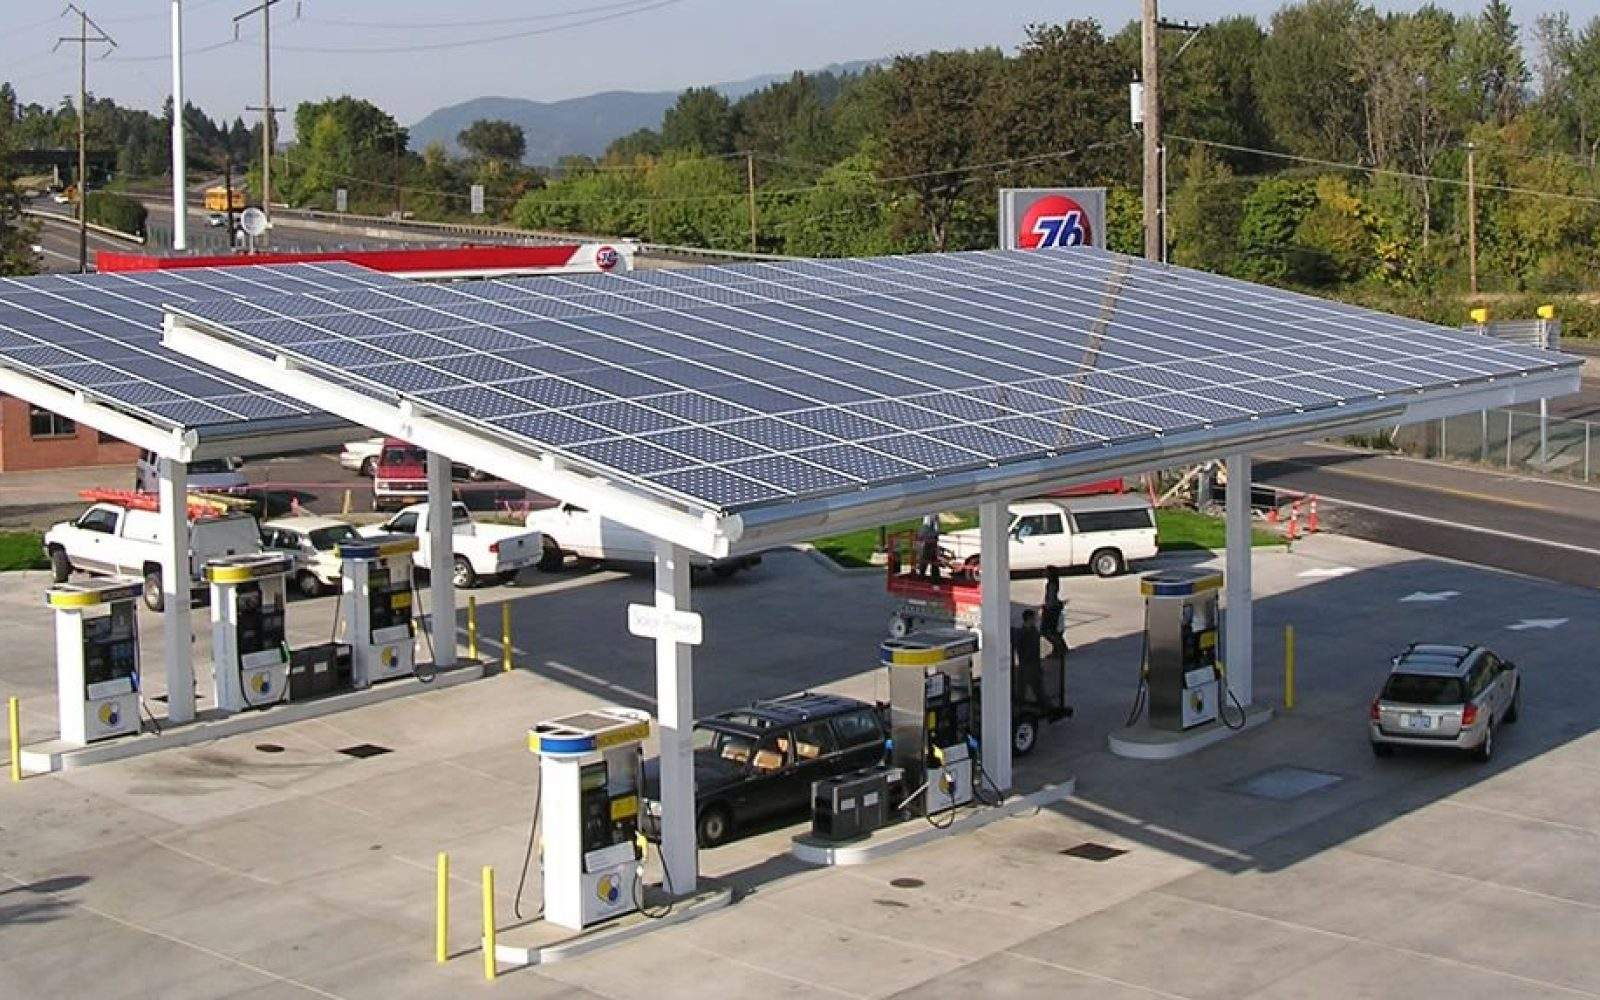 Oil company announces installation of solar panels at 5,000 gas stations, first step to convert them into EV charging stations?